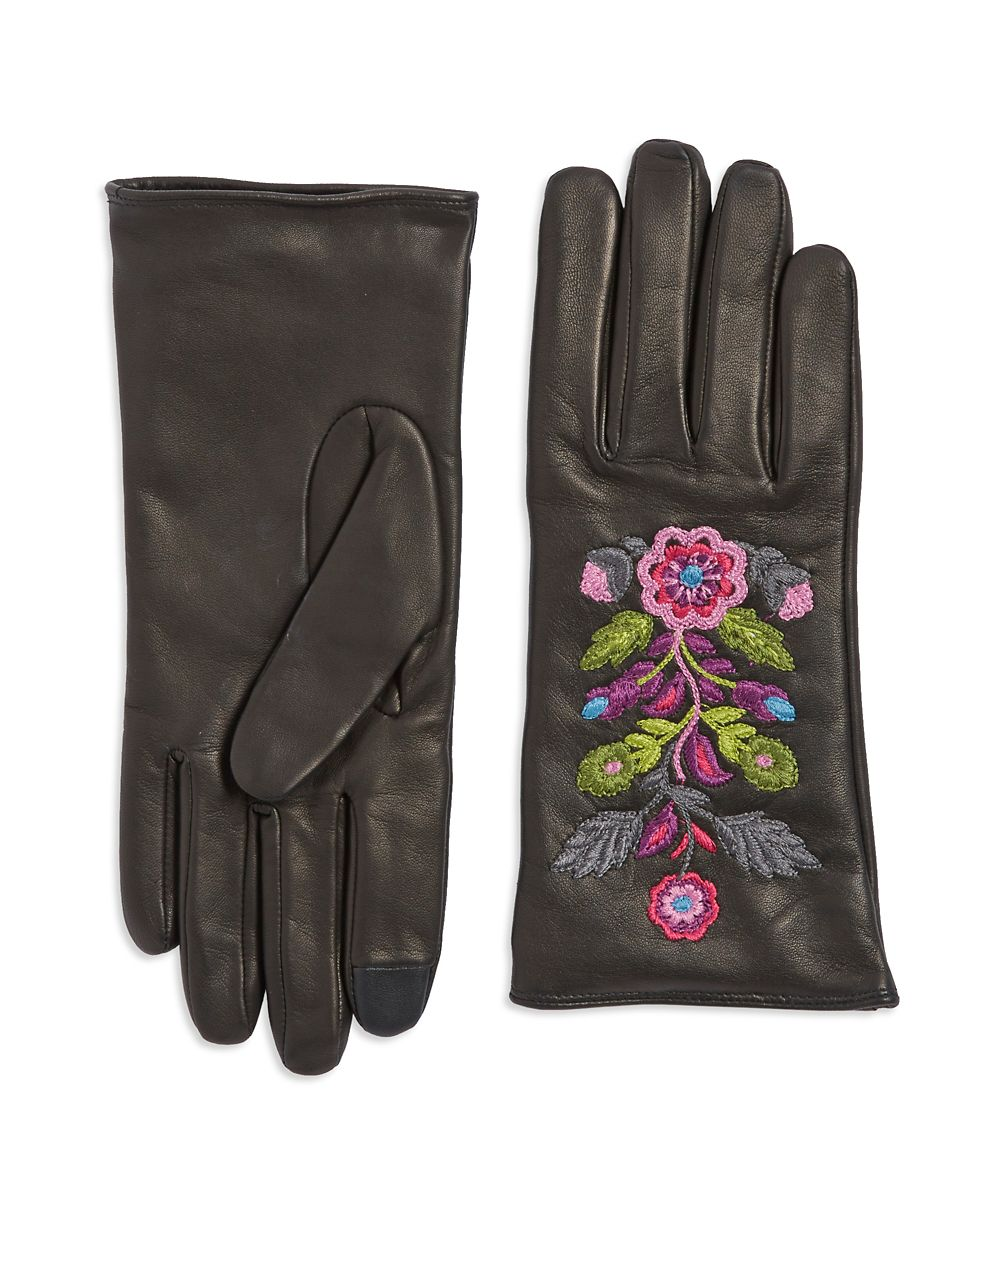 Carolina Amato Embriodered Leather Gloves at Lord + Taylor // Price: $150 // (Lord + Taylor // lordandtaylor.com){&amp;nbsp;}<p></p>